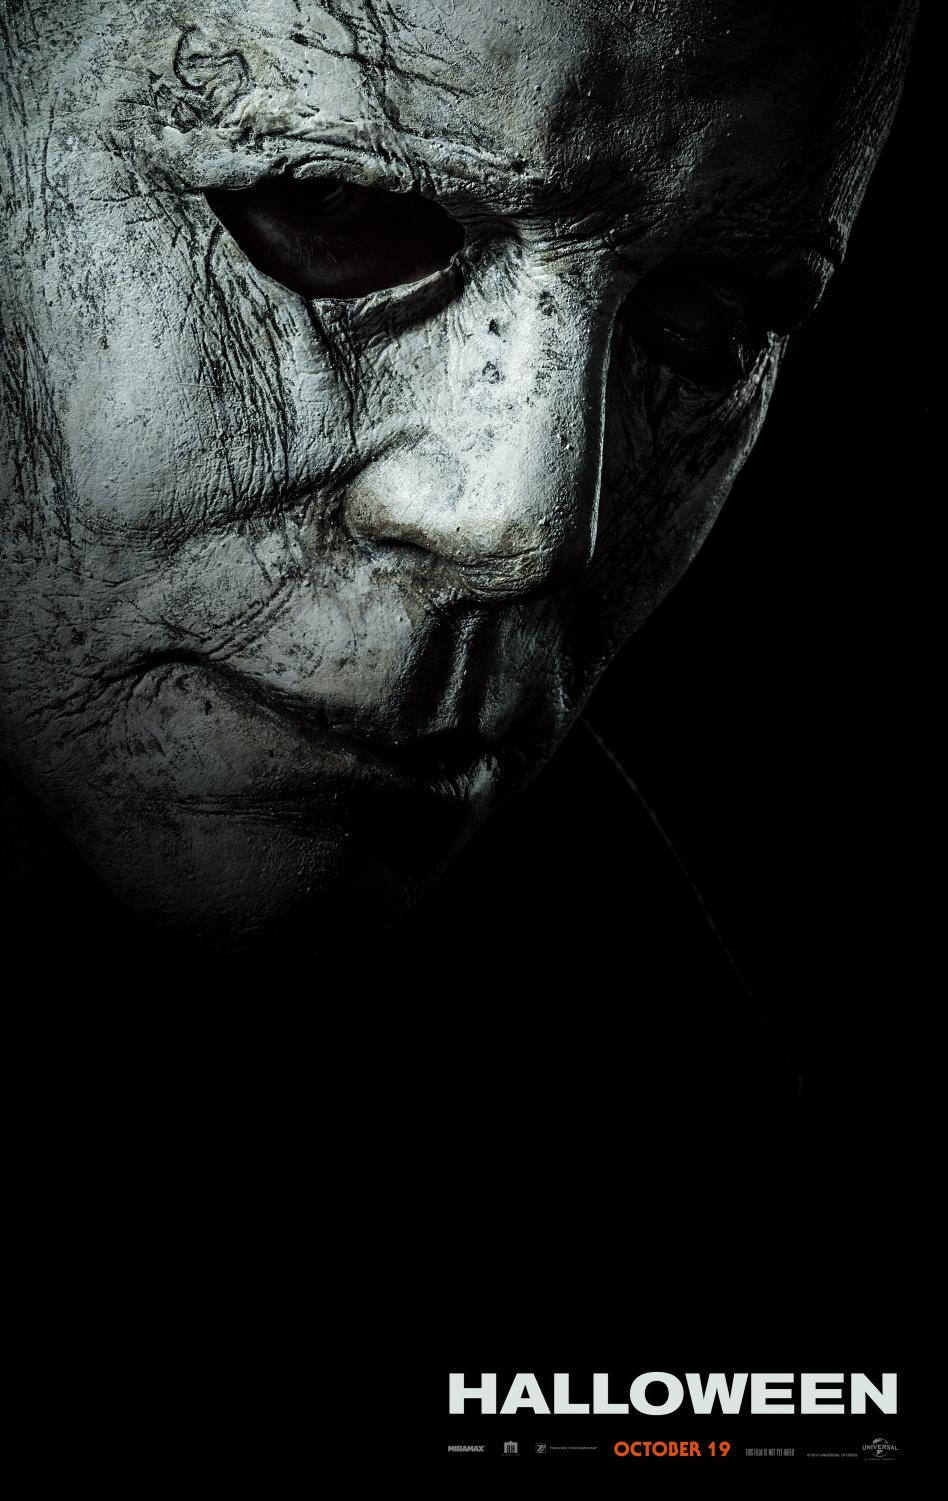 Installment of the Halloween series released on Oct. 19.